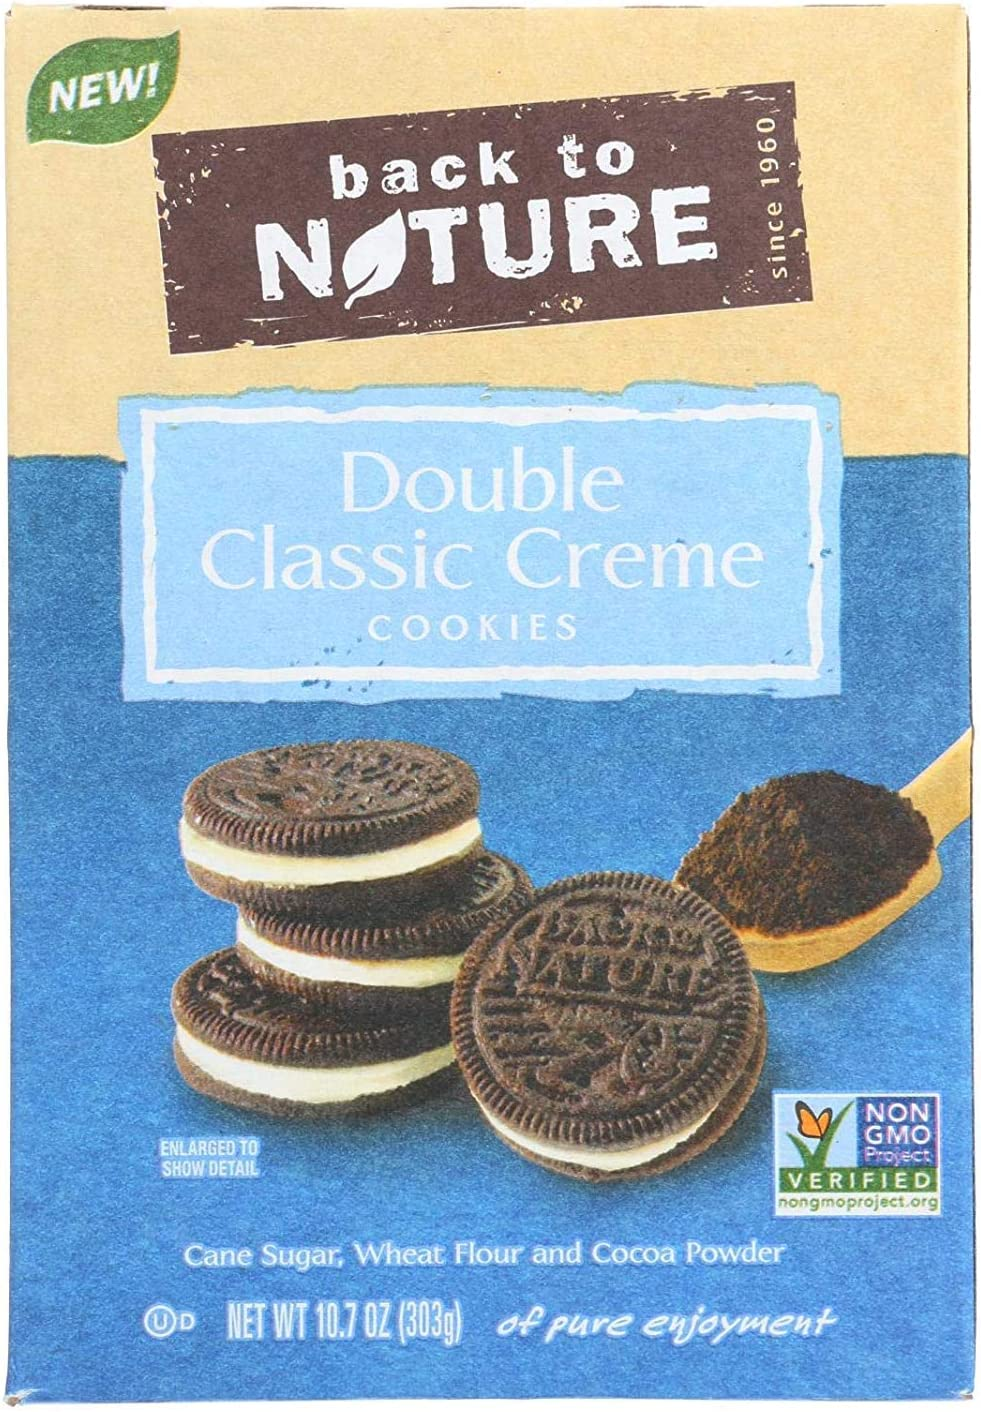 BACK TO NATURE, COOKIES, DBL CLASSIC CREME, Pack of 6, Size 10.7 OZ - No Artificial Ingredients GMO Free